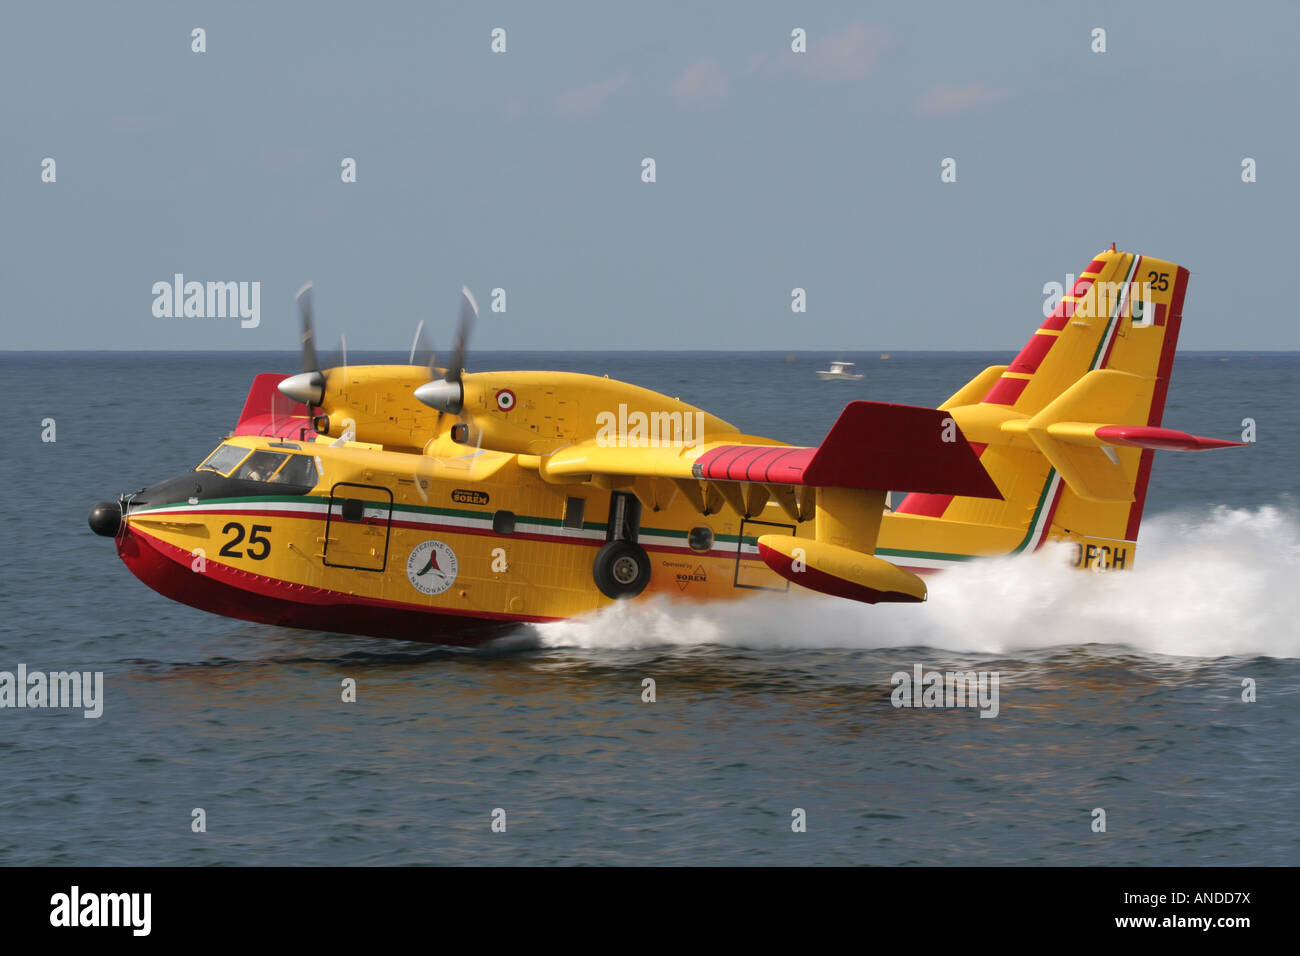 An Italian Bombardier 415 (Canadair CL-415) waterbomber skimming the sea - Stock Image